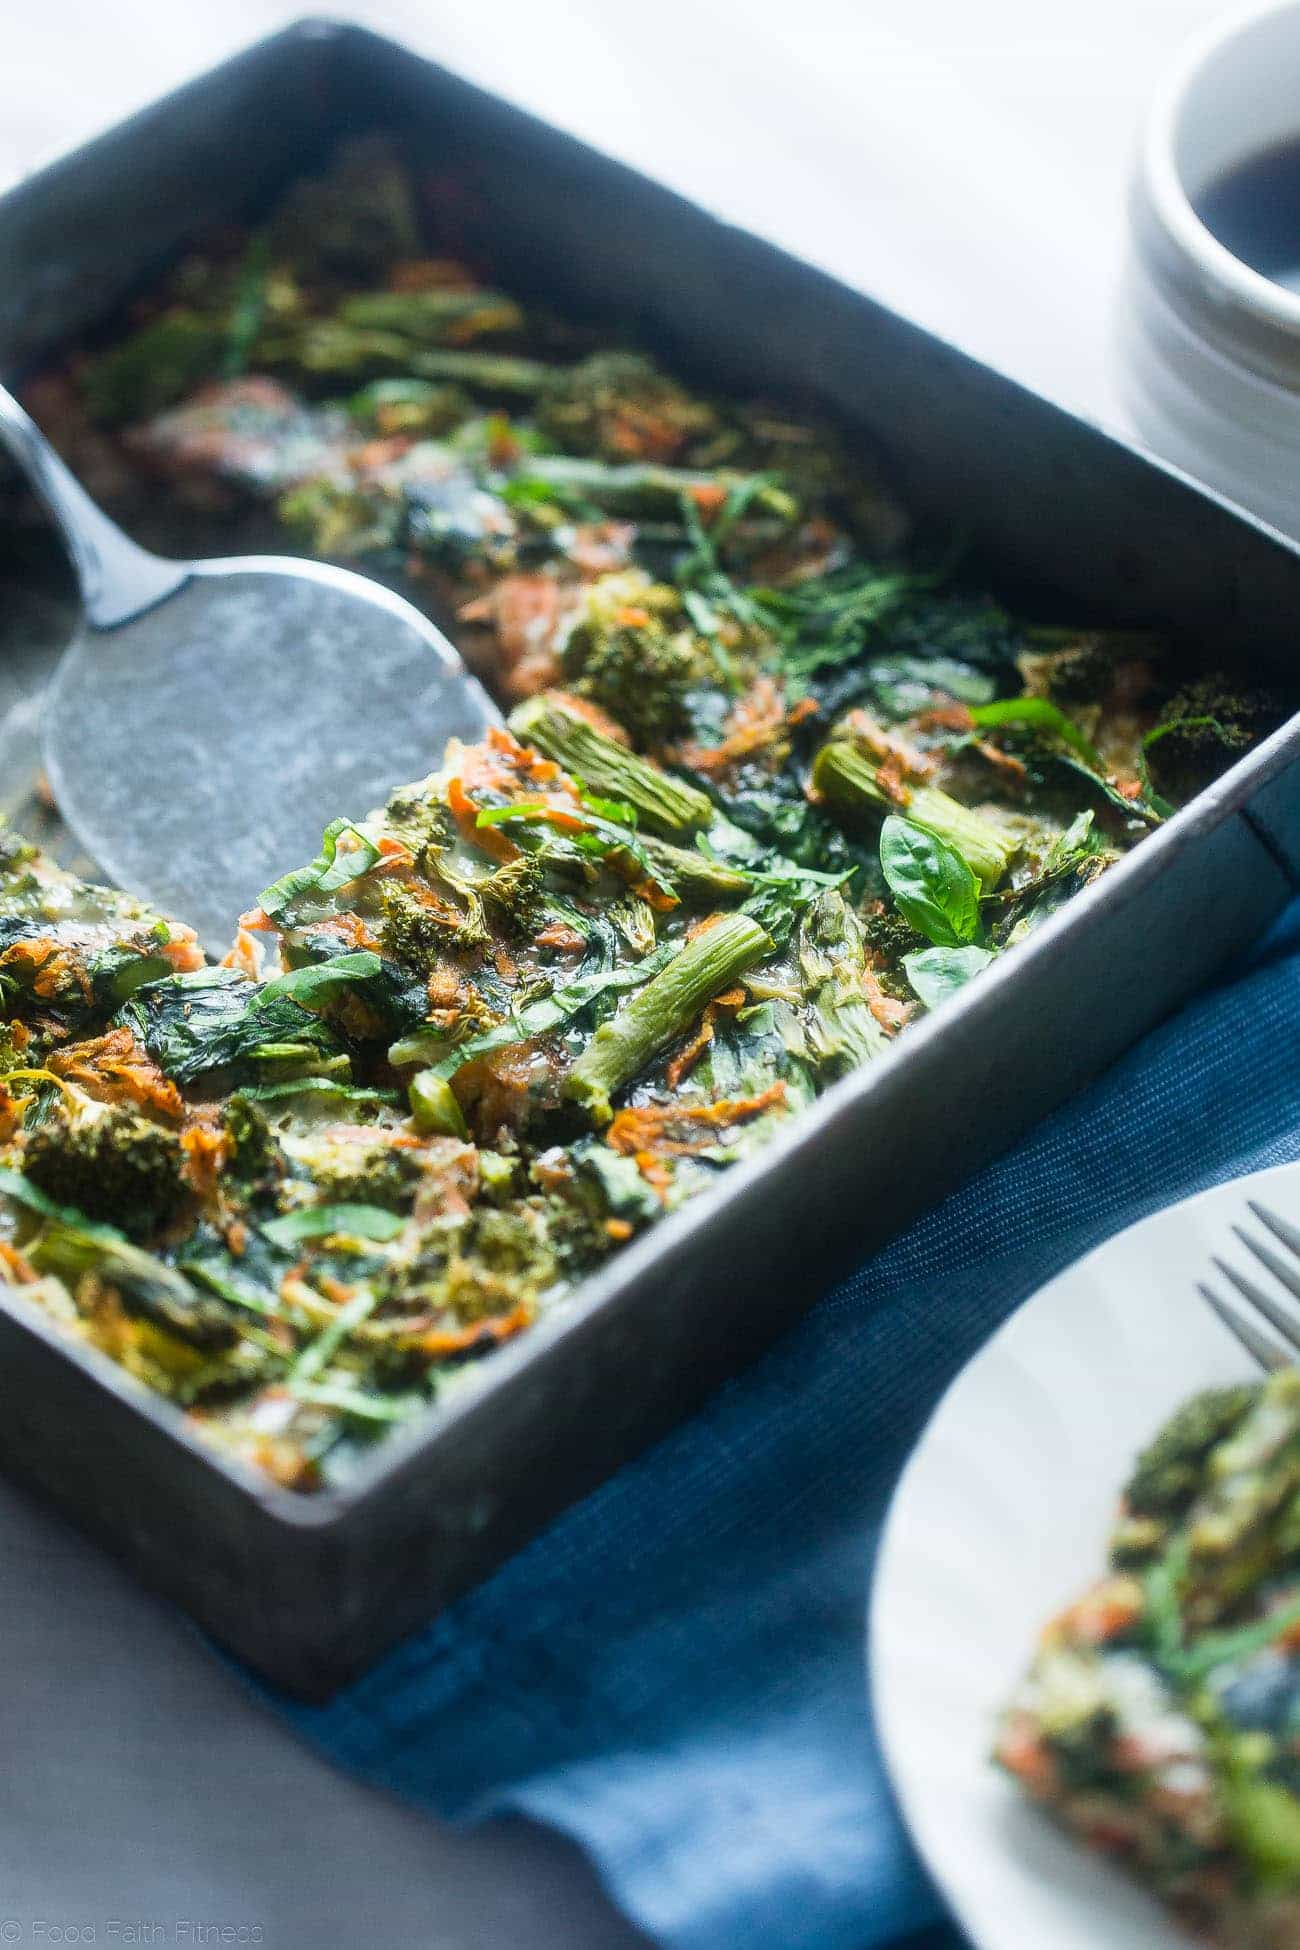 Gluten Free Spring Veggie Sausage Breakfast Casserole - This easy, overnight dairy free breakfast casserole is loaded with seasonal veggies and is only 175 calories! Perfect for spring brunches! | Foodfaithfitness.com | @FoodFaithFit